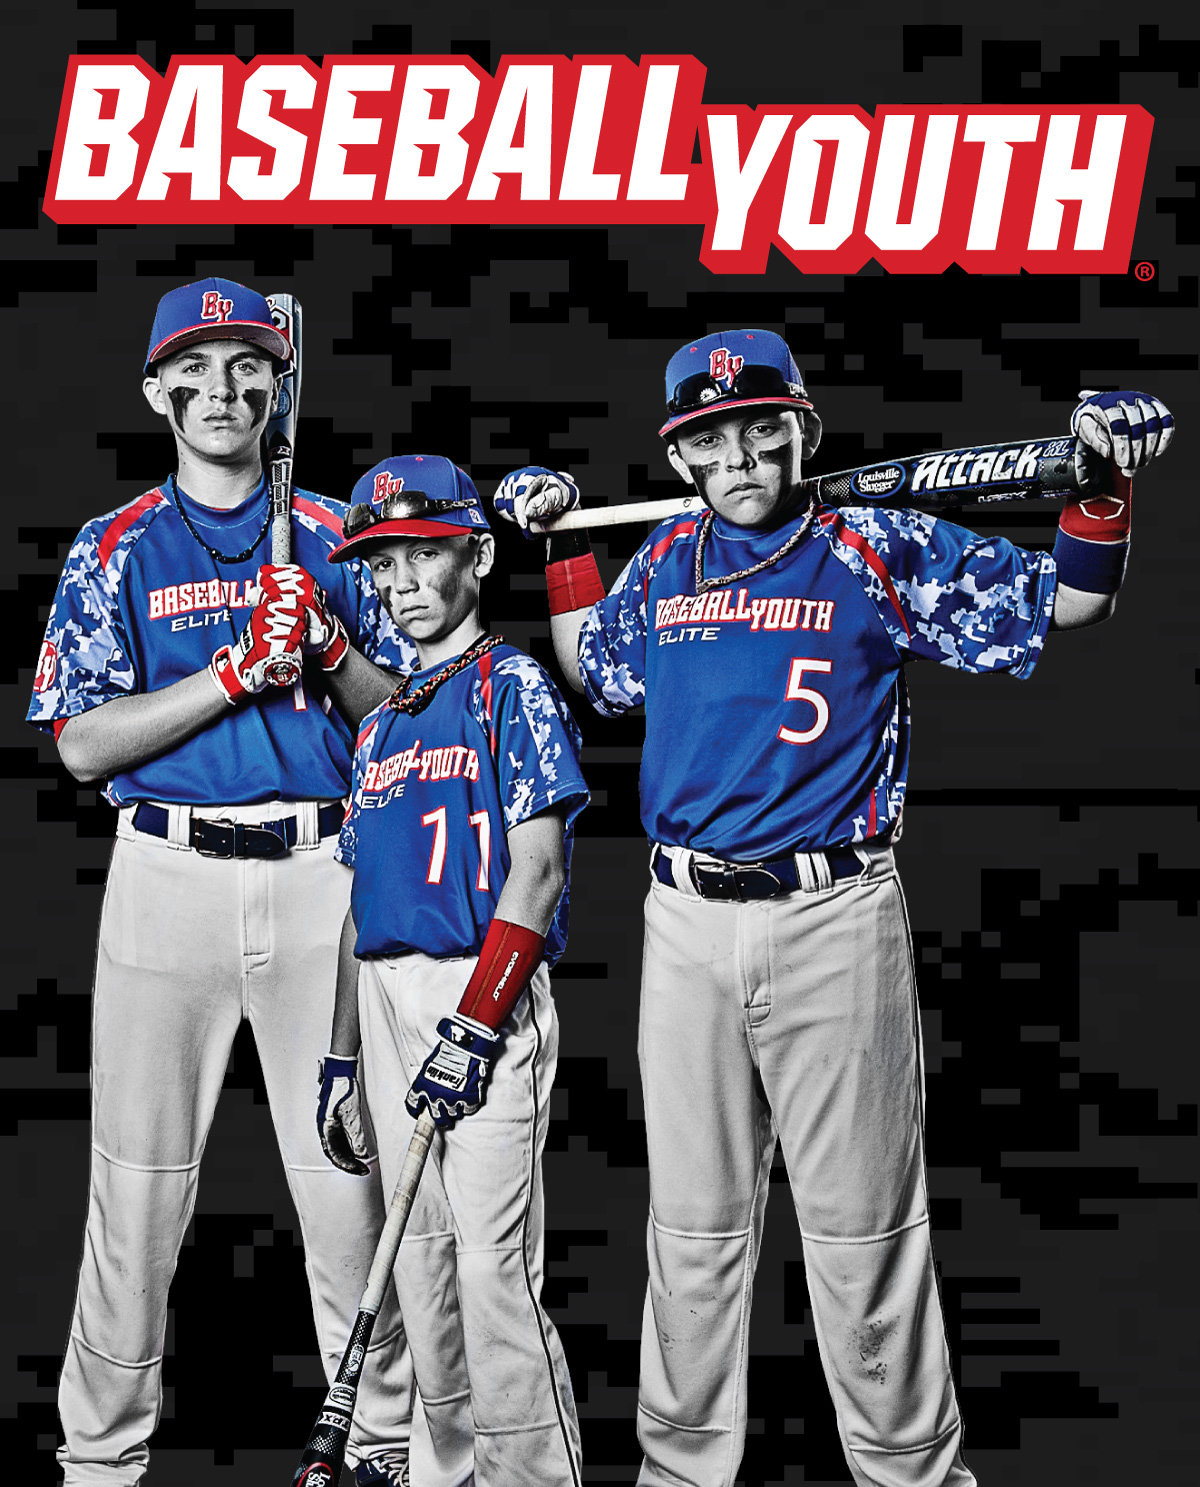 Baseball Youth banners